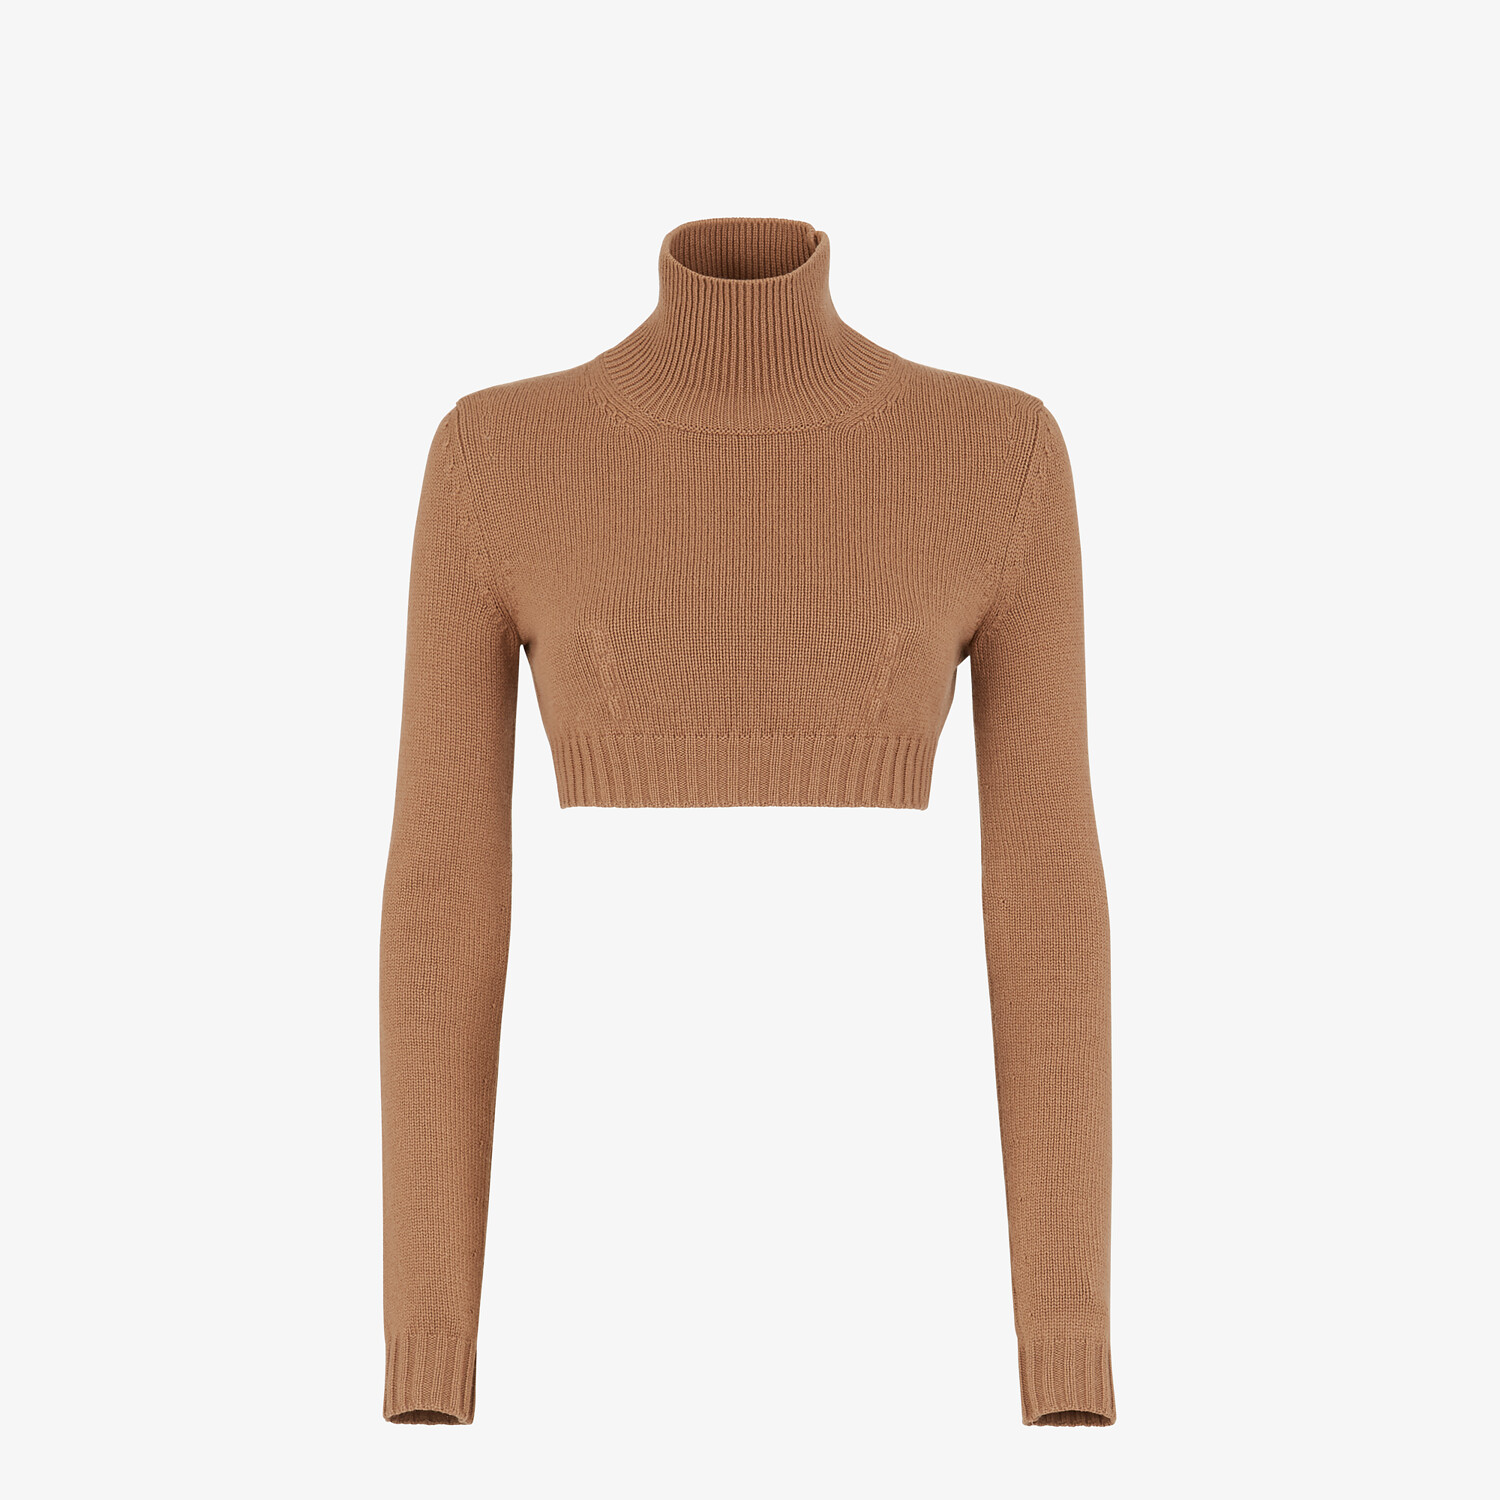 FENDI SWEATER - Brown cashmere sweater - view 1 detail